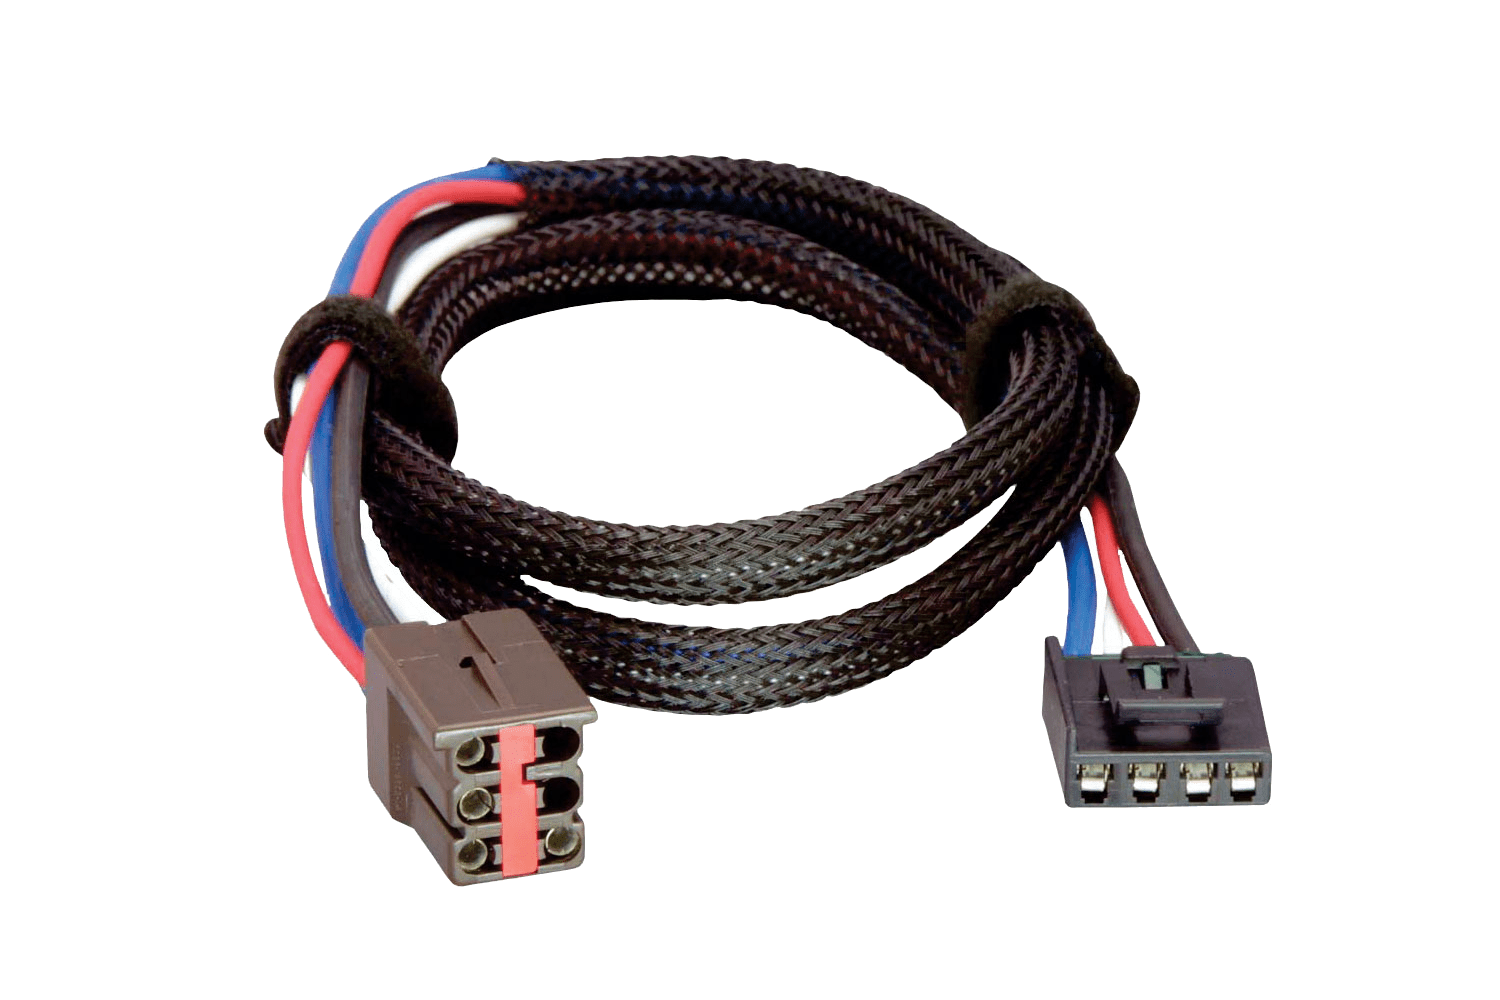 towing electrical socal truck accessories & equipment santee, san toyota pickup wiring harness diagram towing electrical brake control harness